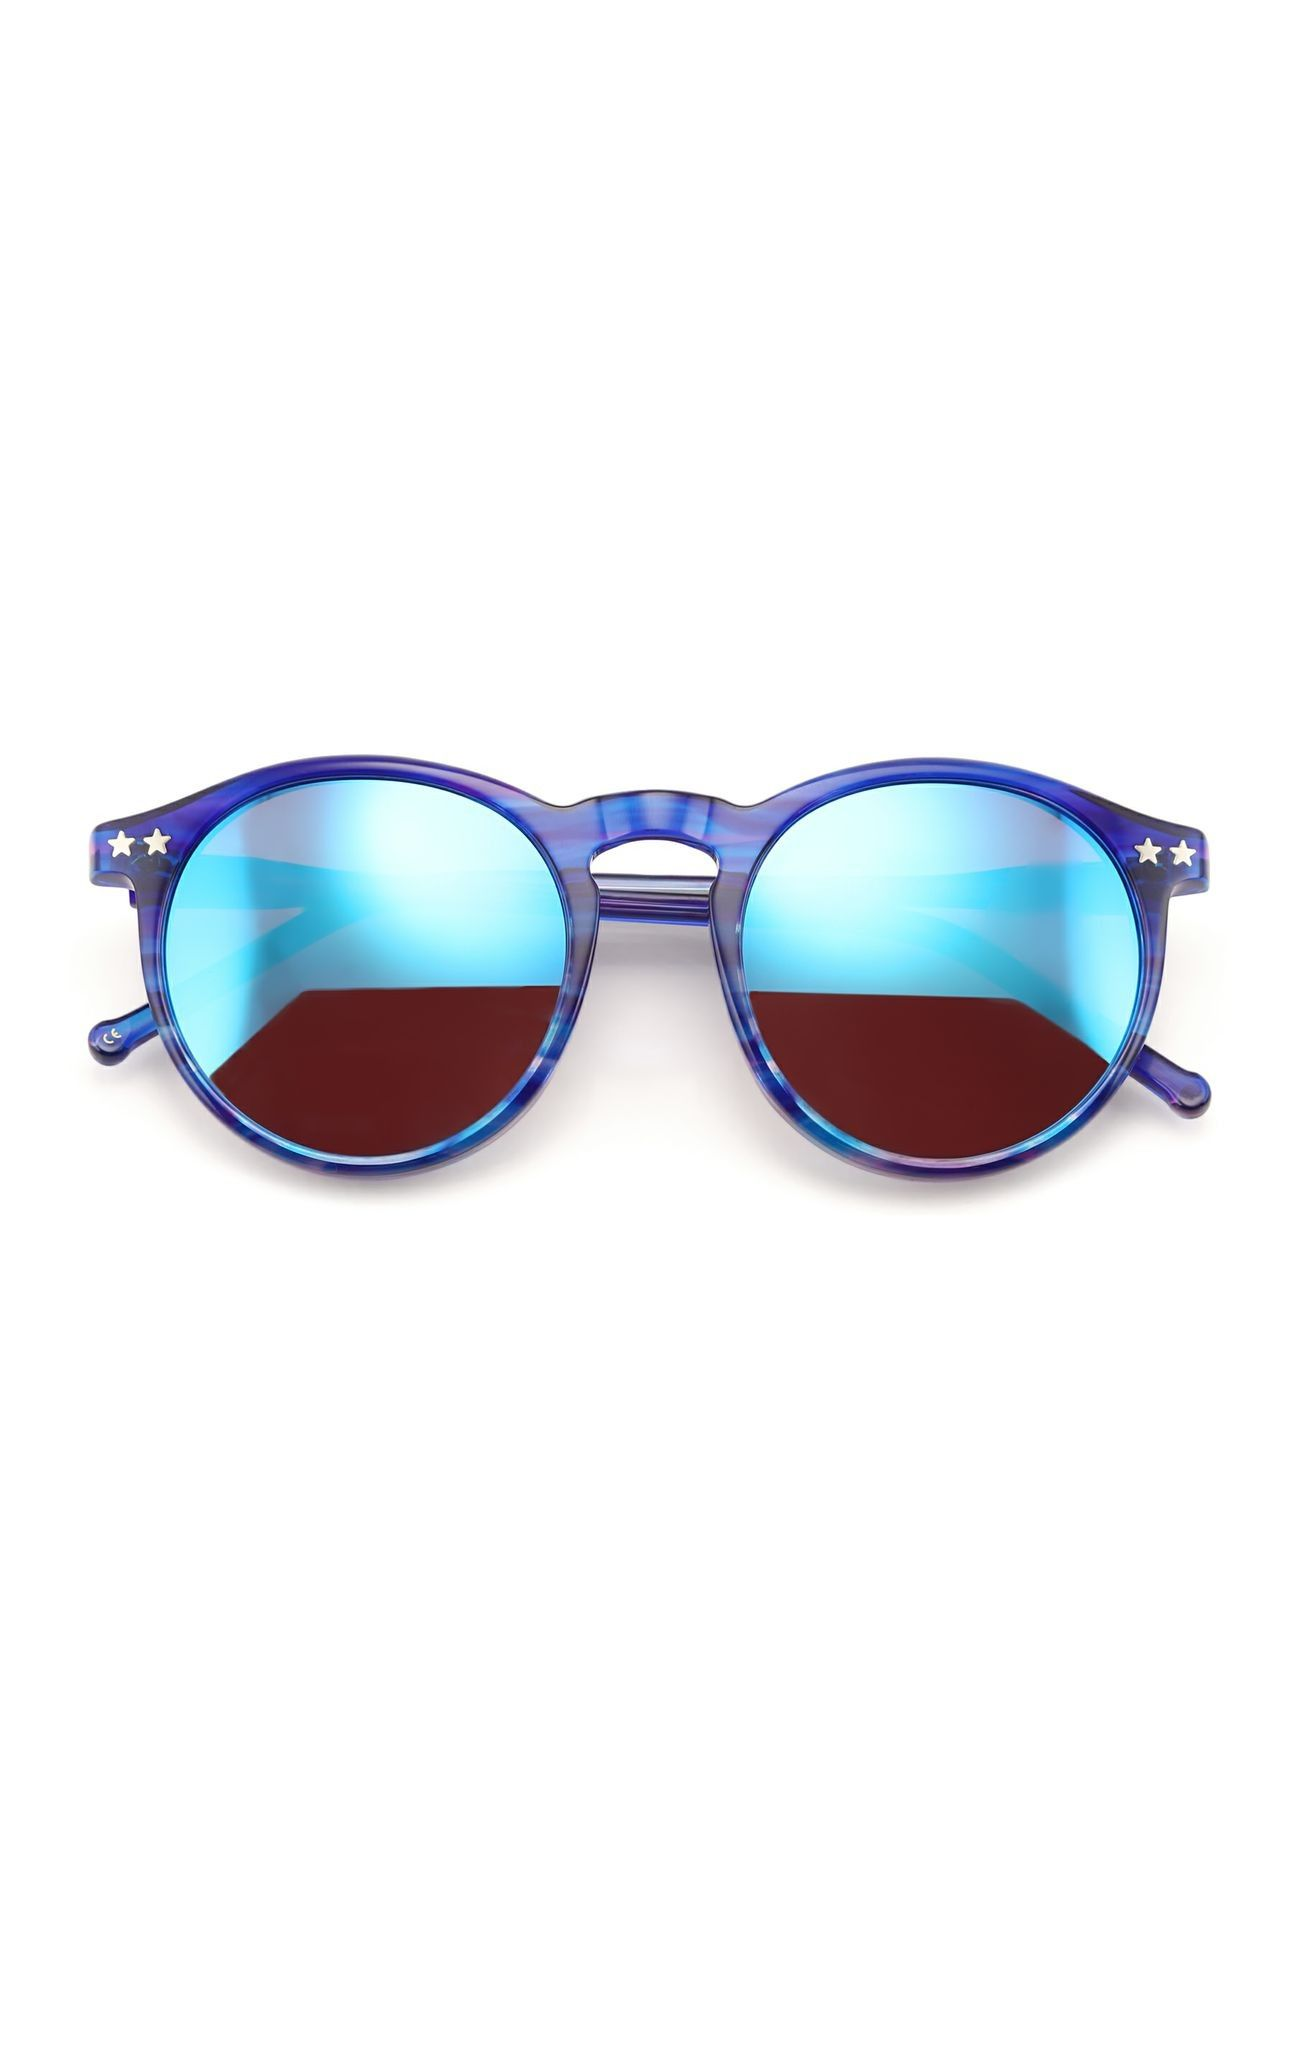 e87c9deeea Wildfox Sunglasses - The Steff Deluxe in Blue Tiger